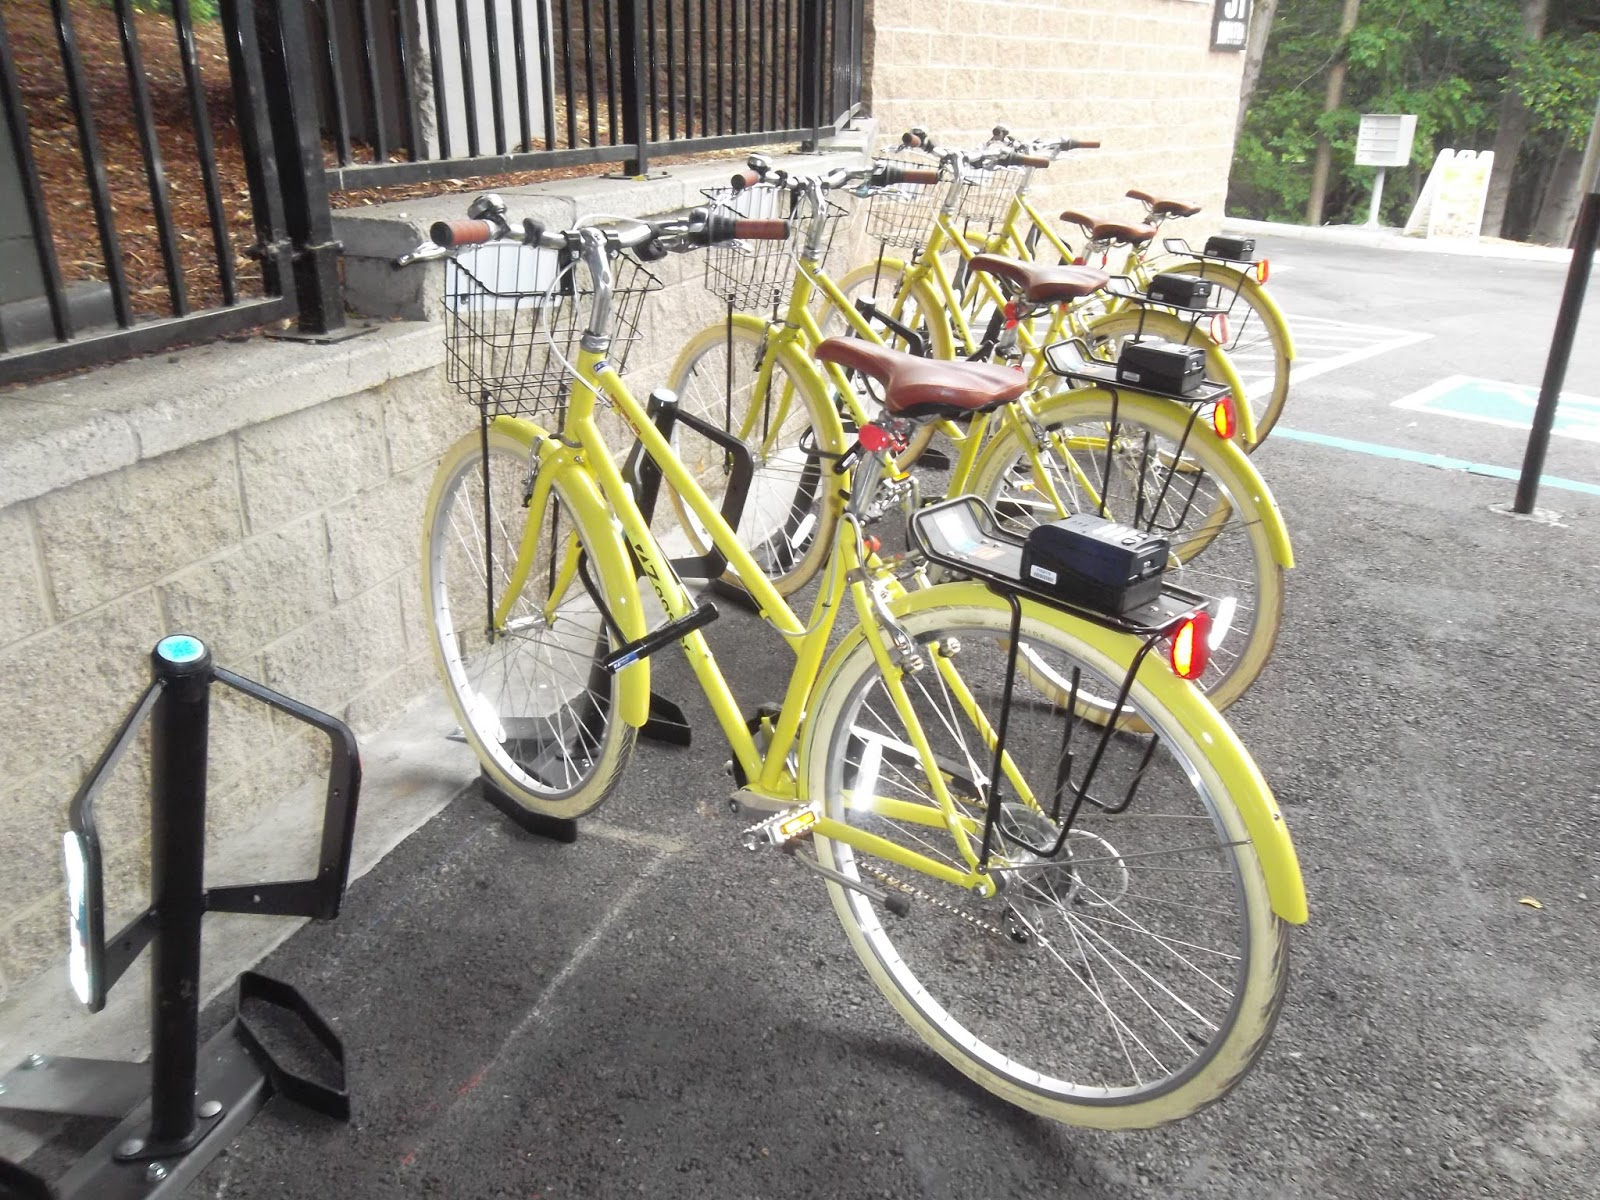 Librarian on a Bicycle: Zagster bikeshare in Ashland, Oregon